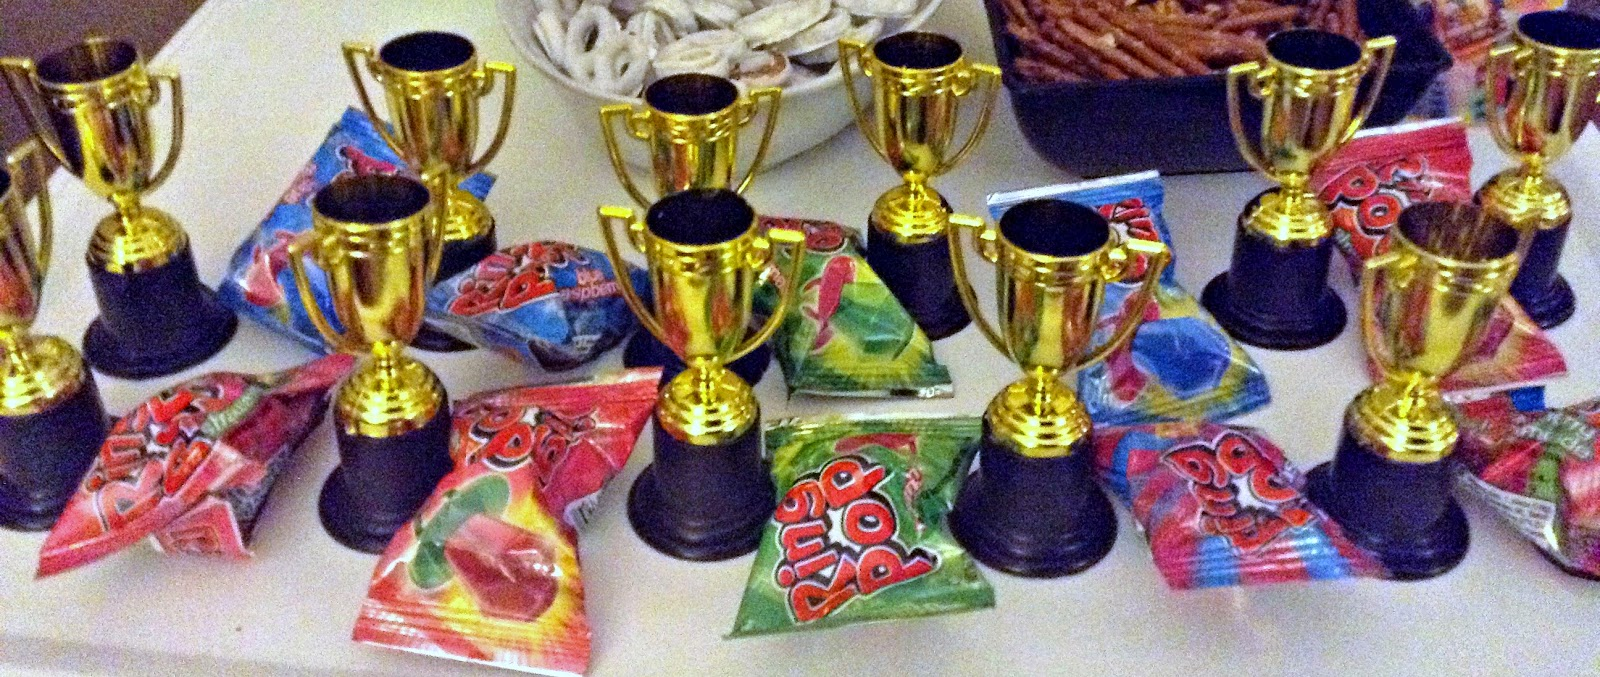 Game Night Fun - trophies